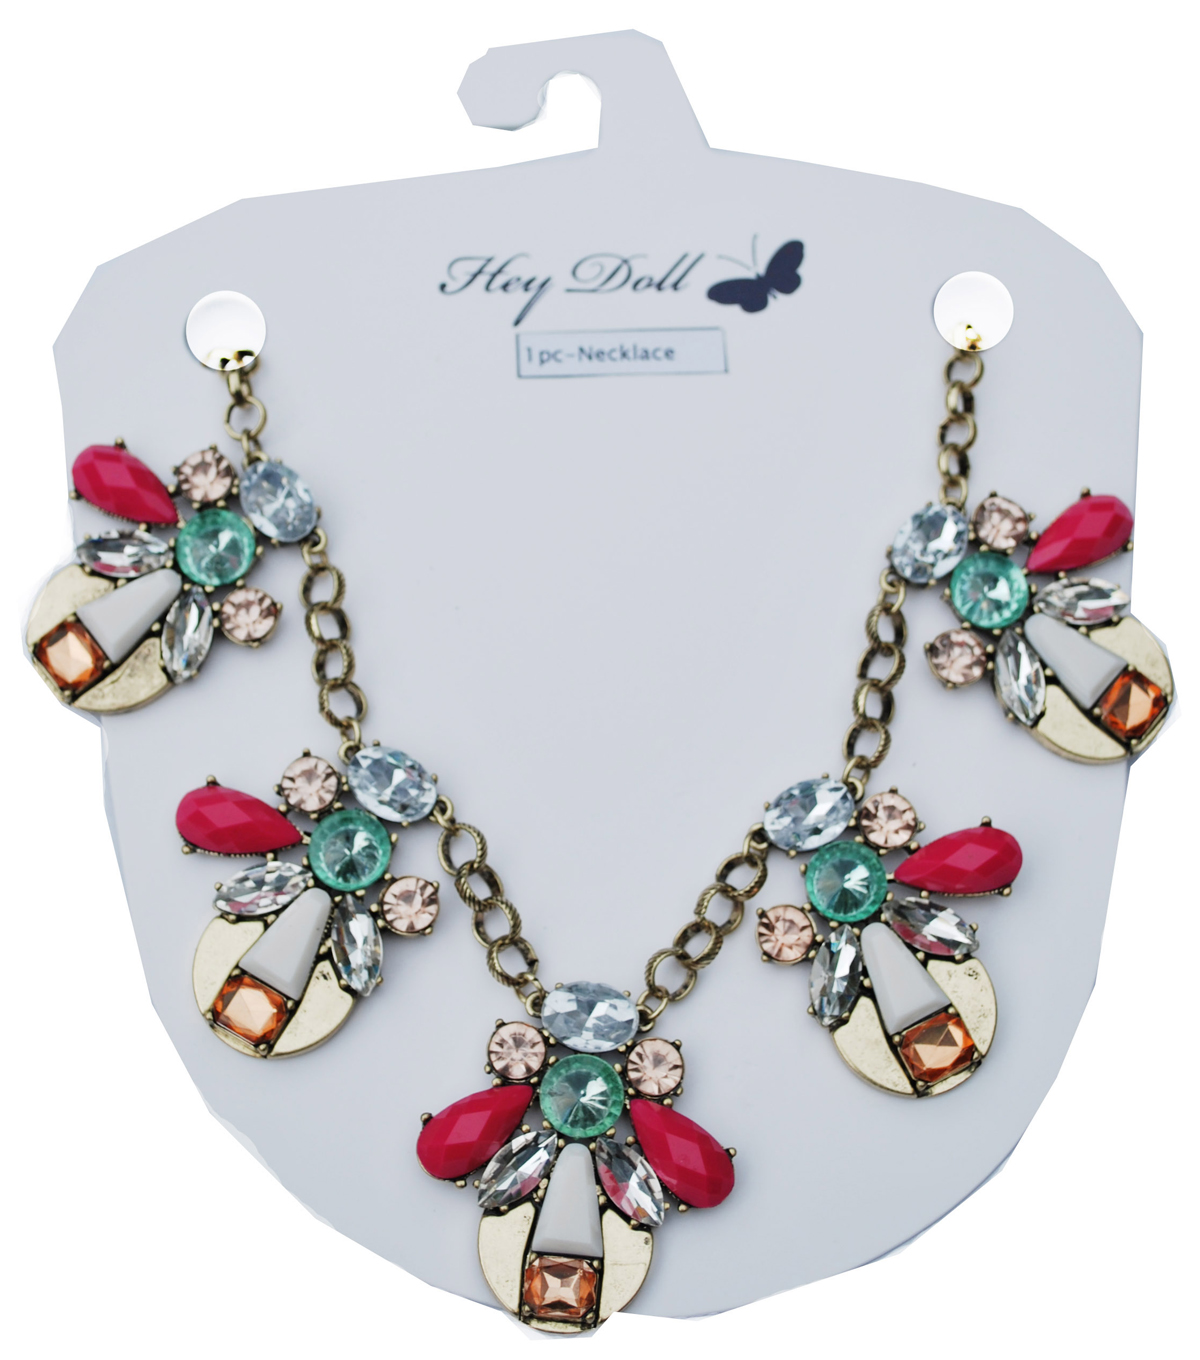 Hey Doll Casted Stone Statement Necklace